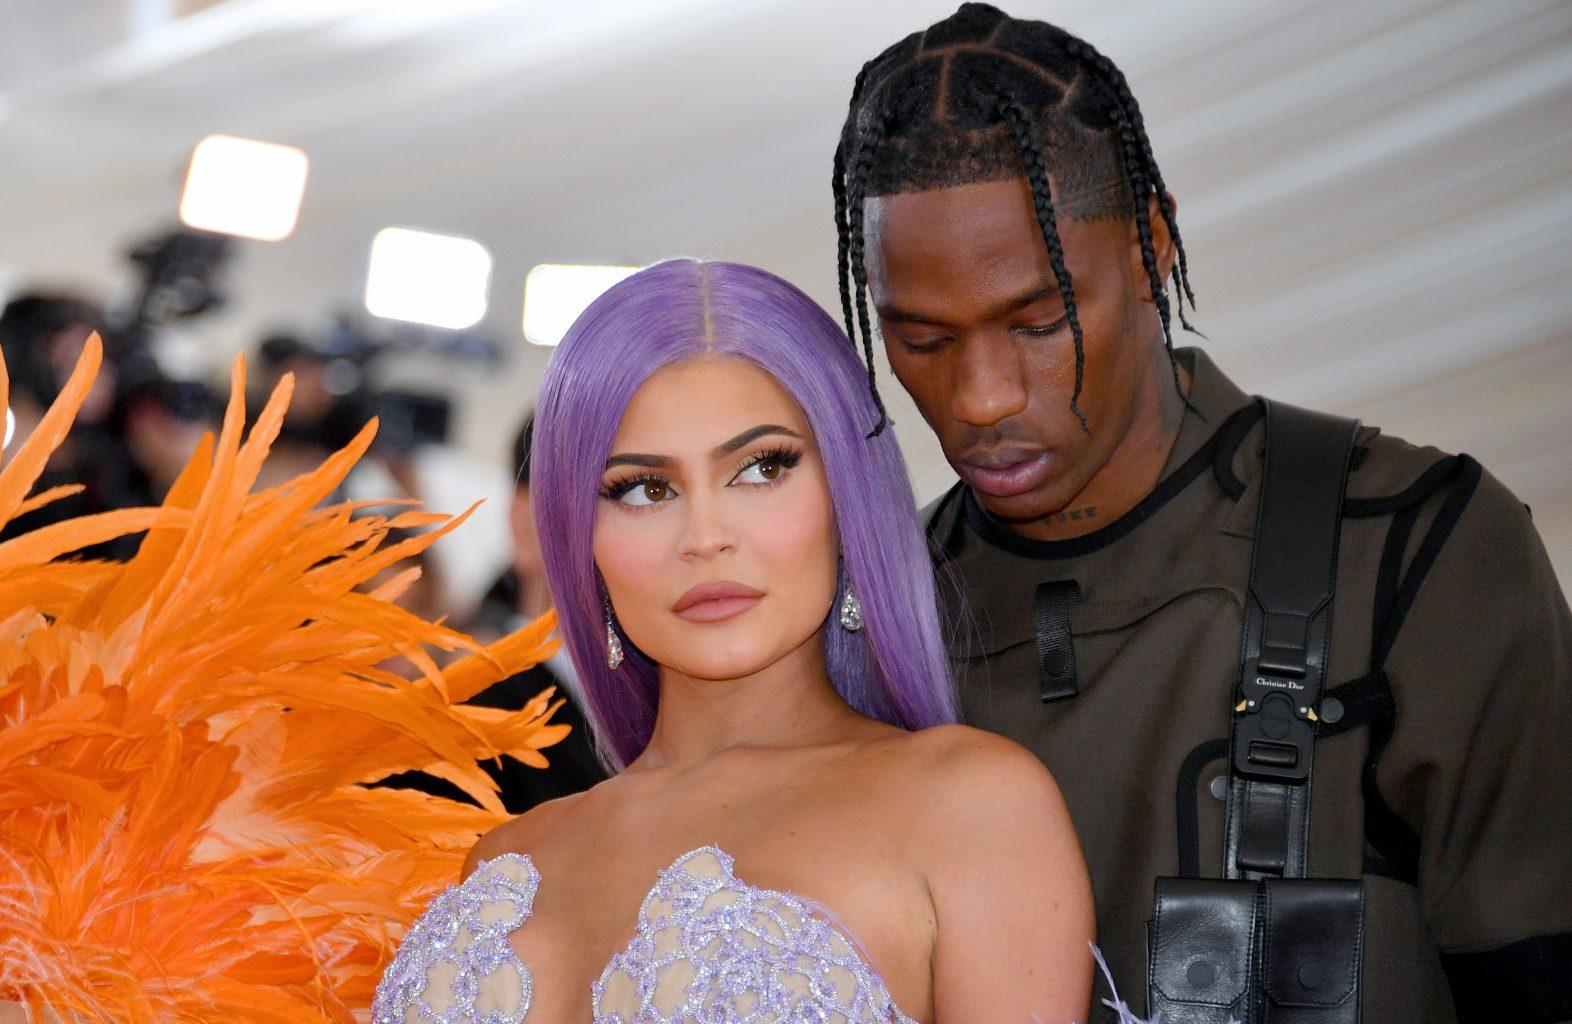 KUWK: Kylie Jenner And Travis Scott Still Hanging Out A Lot Despite Their Split - Here's Why!